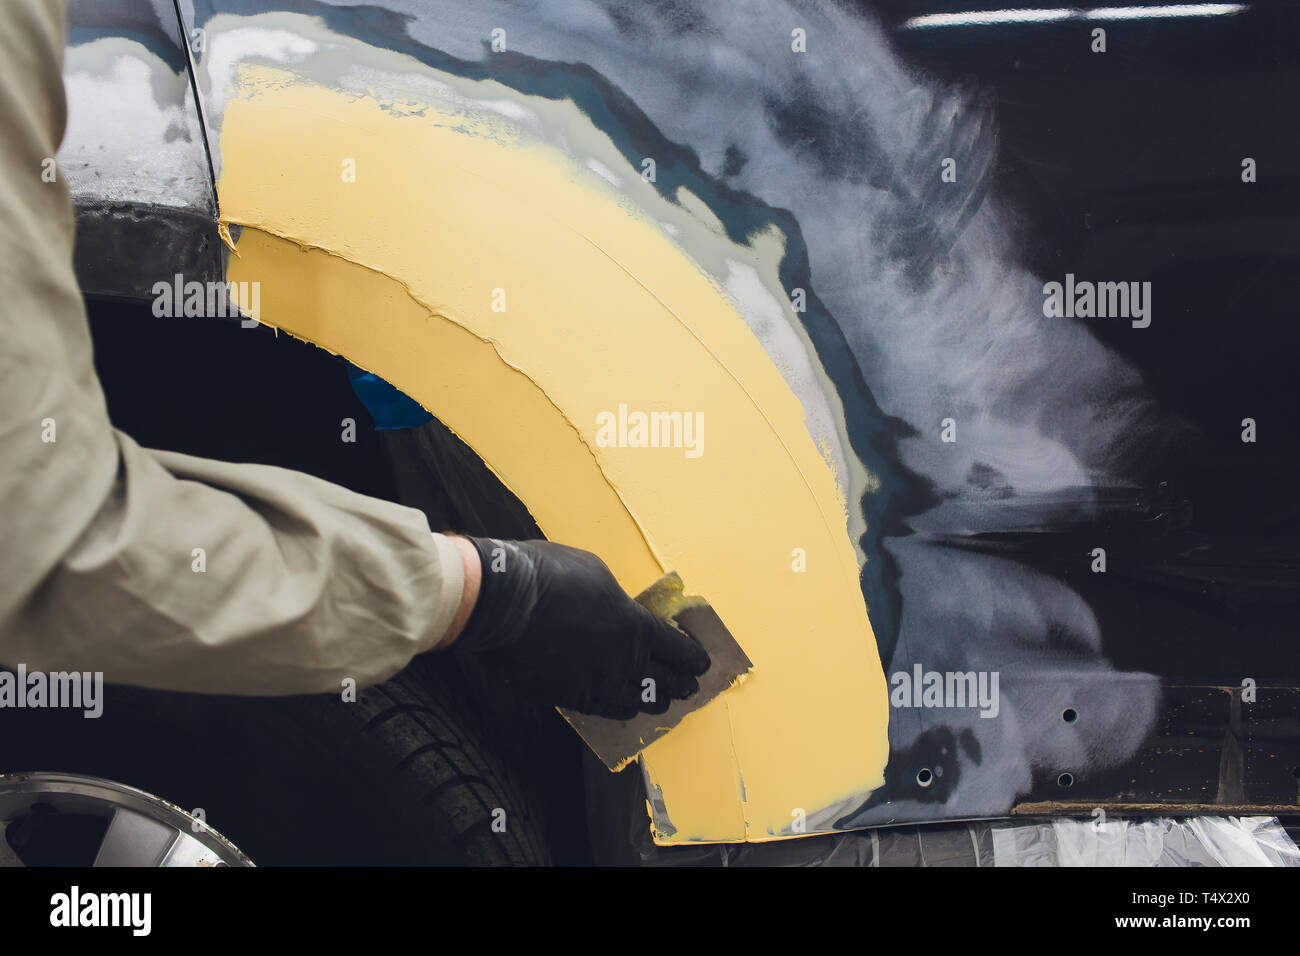 Preparation for painting a car element using emery sender a service technician leveling out before applying a primer after damage to a part of the bod - Stock Image